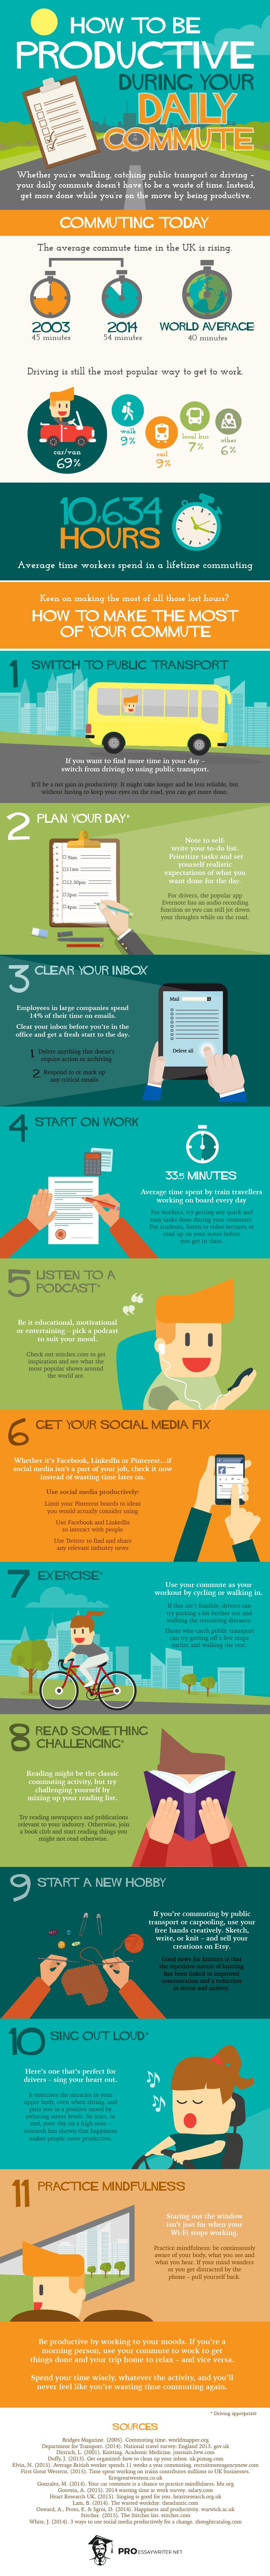 The best ways to have a productive commute to work and make the most of your time.